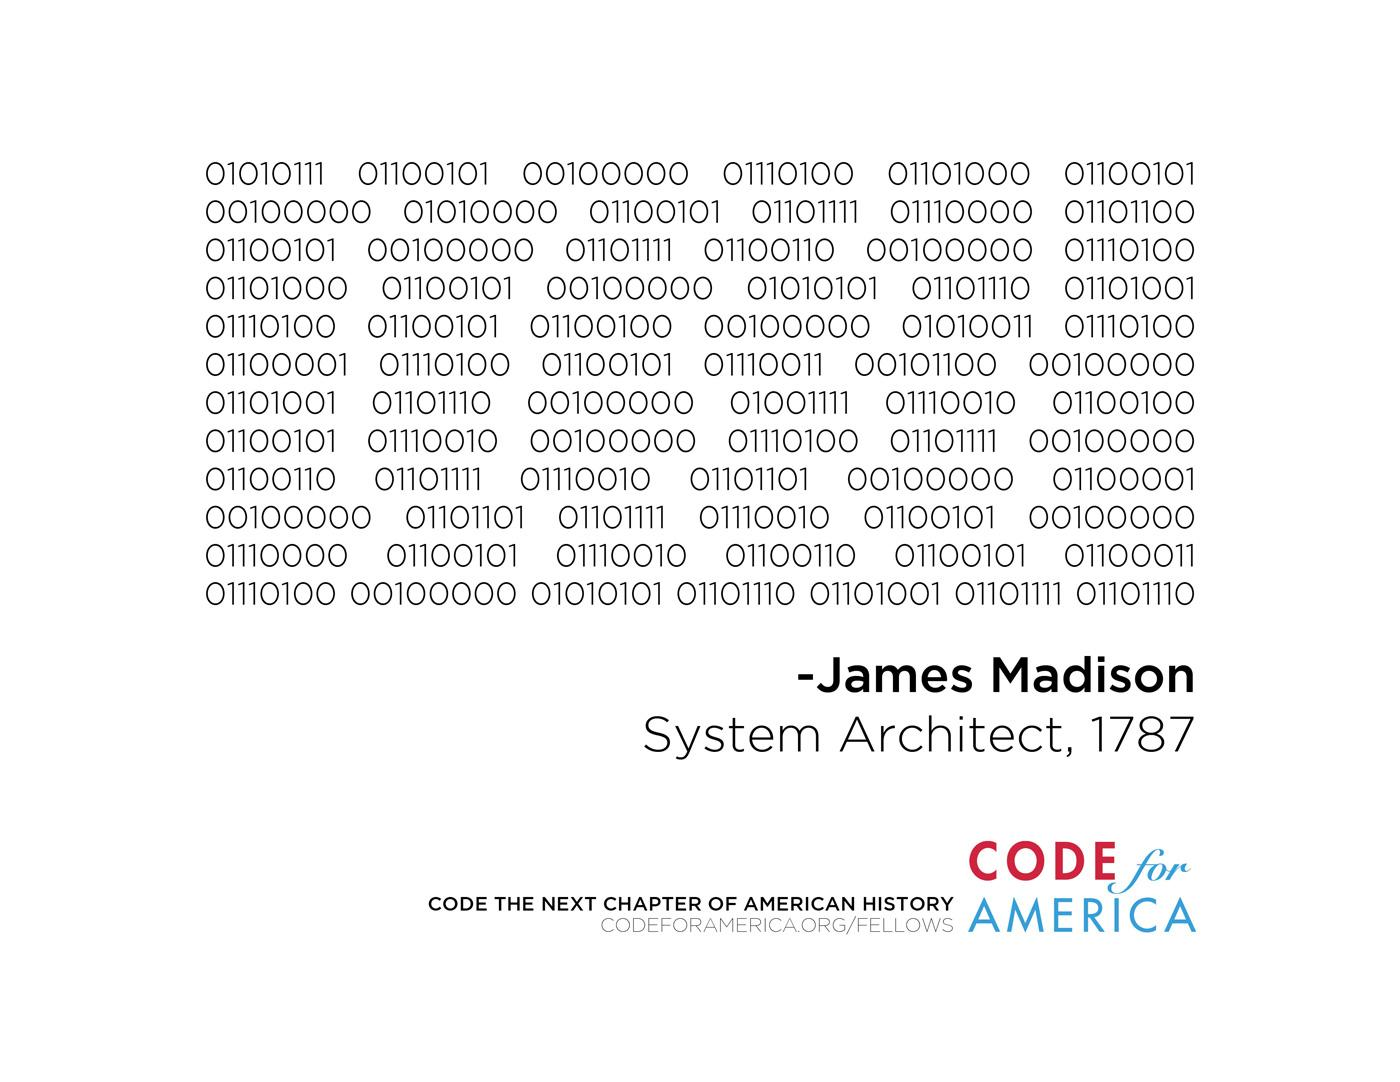 Code for America Print Ad -  James Madison, 1787, System Architect